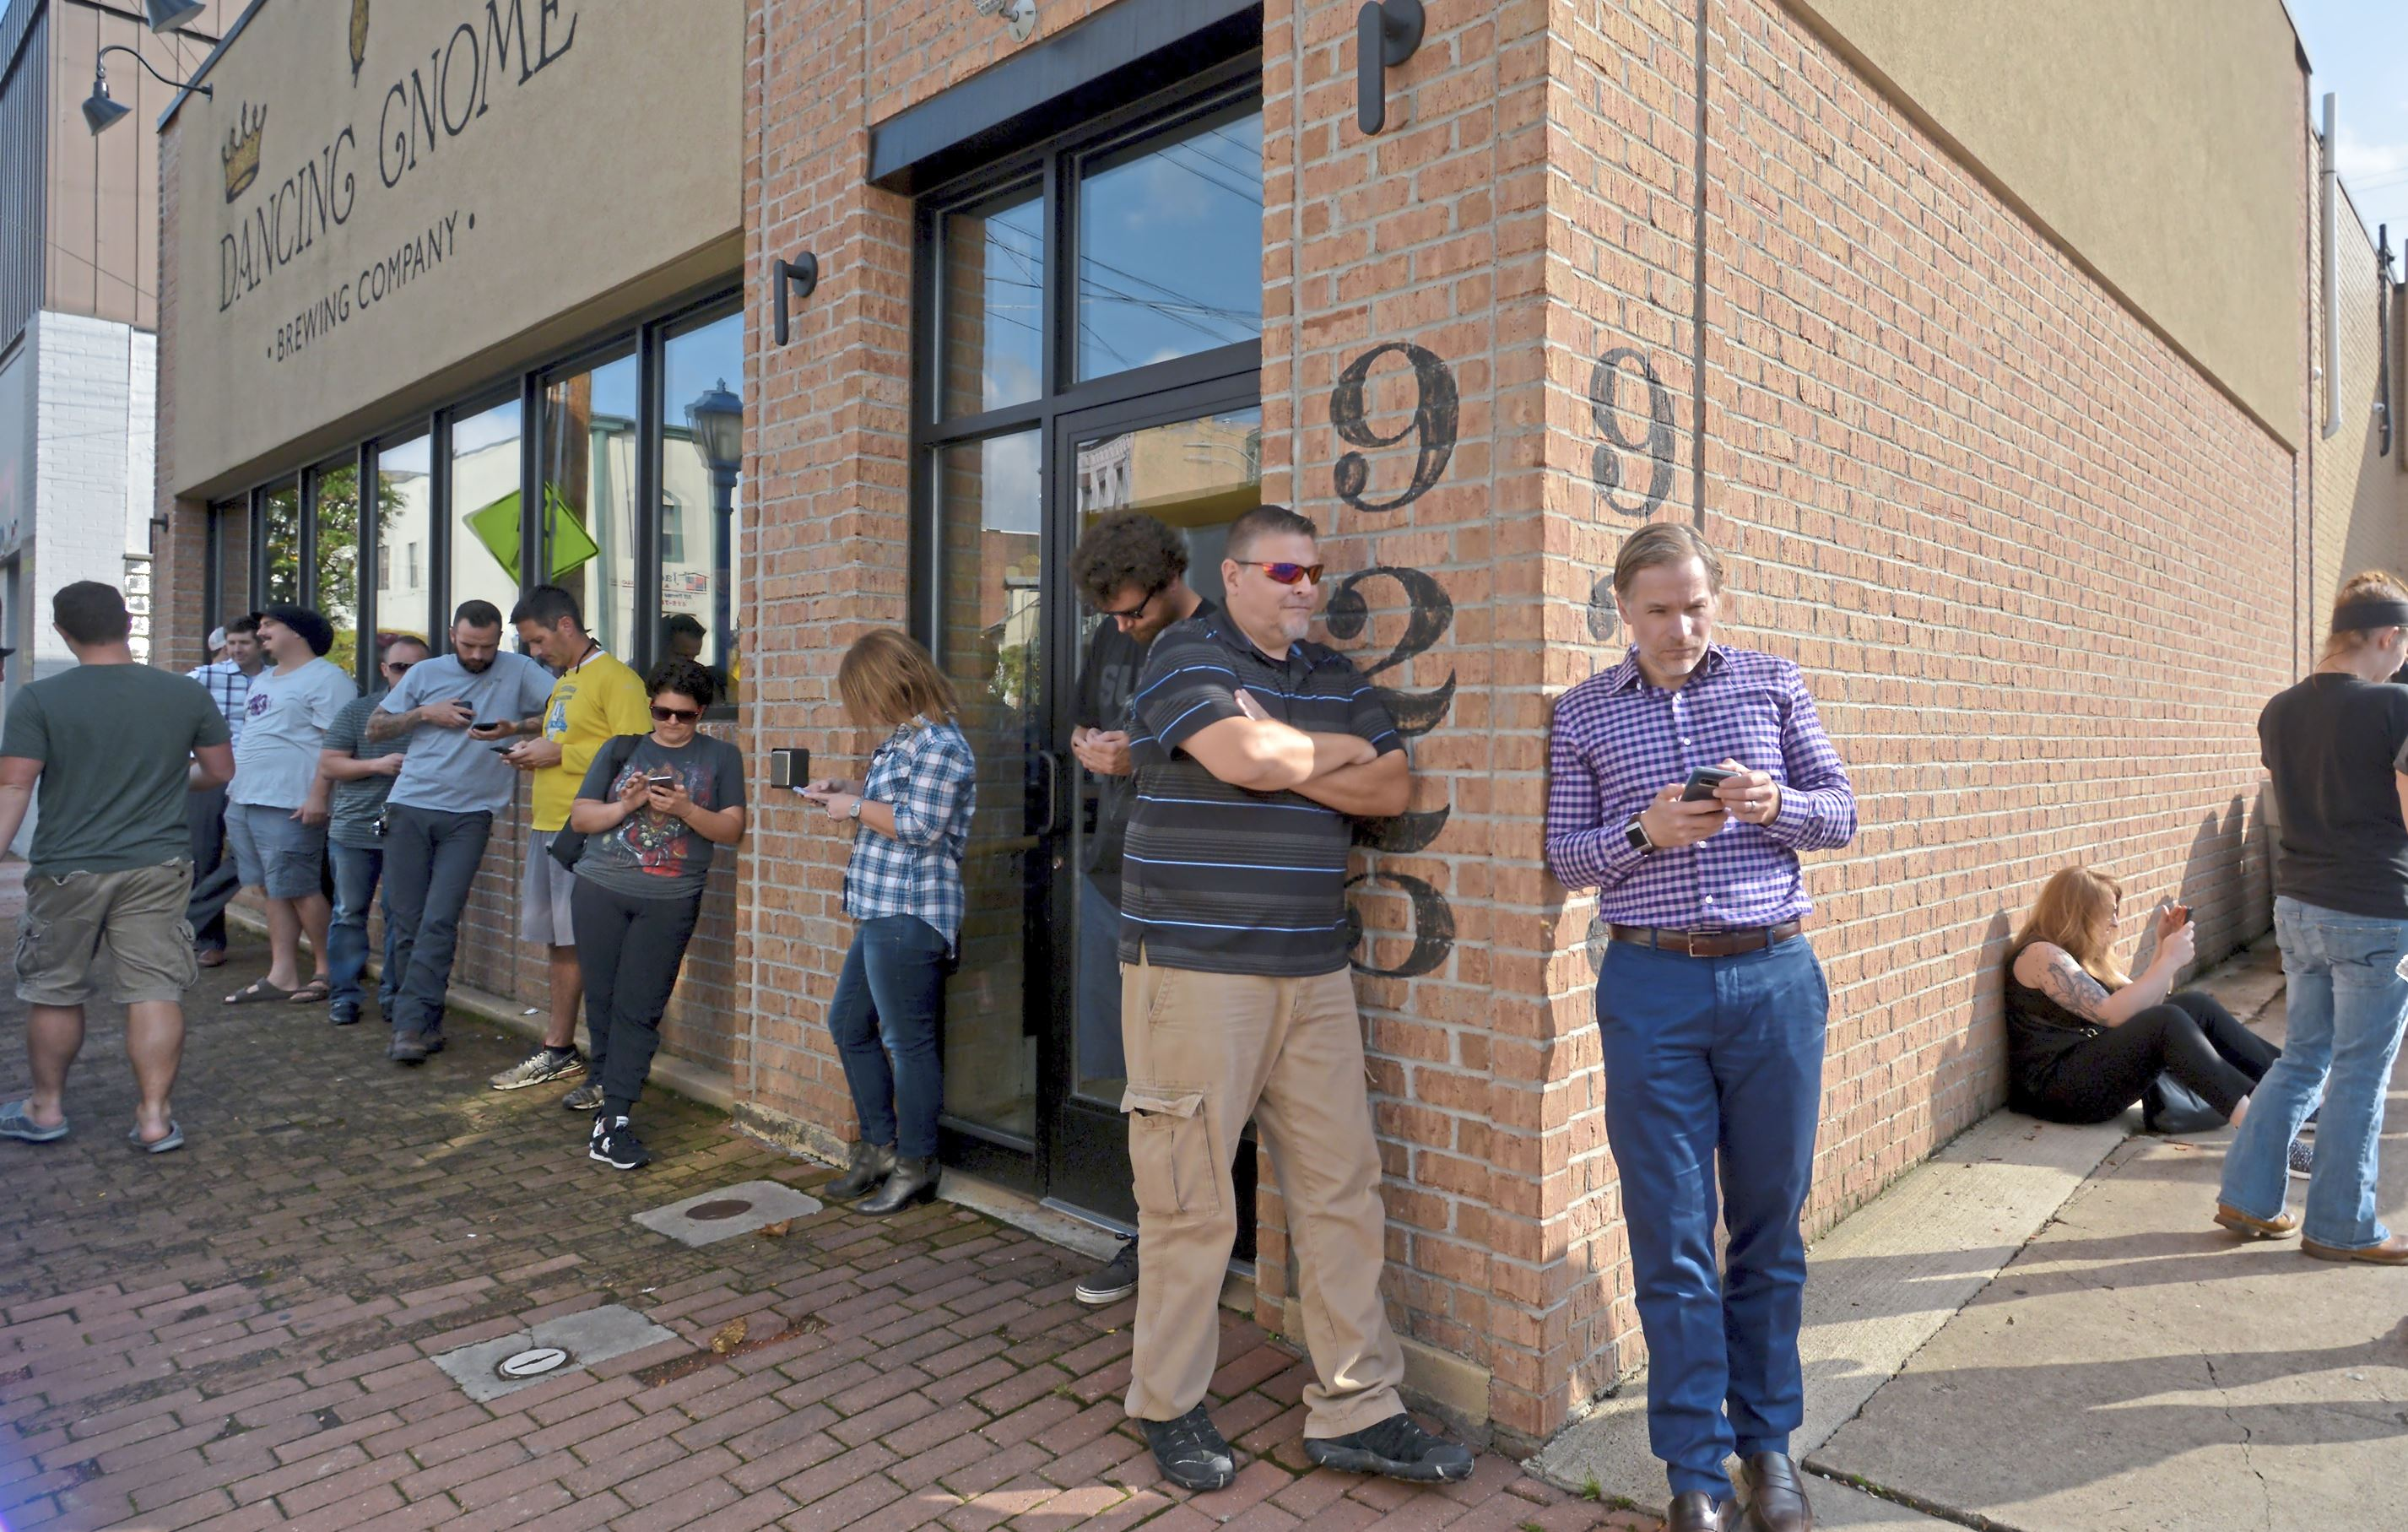 20171011ppDancingGnome1MAG Patrons line up around the Dancing Gnome Brewing Company for the release of their new brew, Double Lustra Wednesday, October 11, 2017 in Sharpsburg.